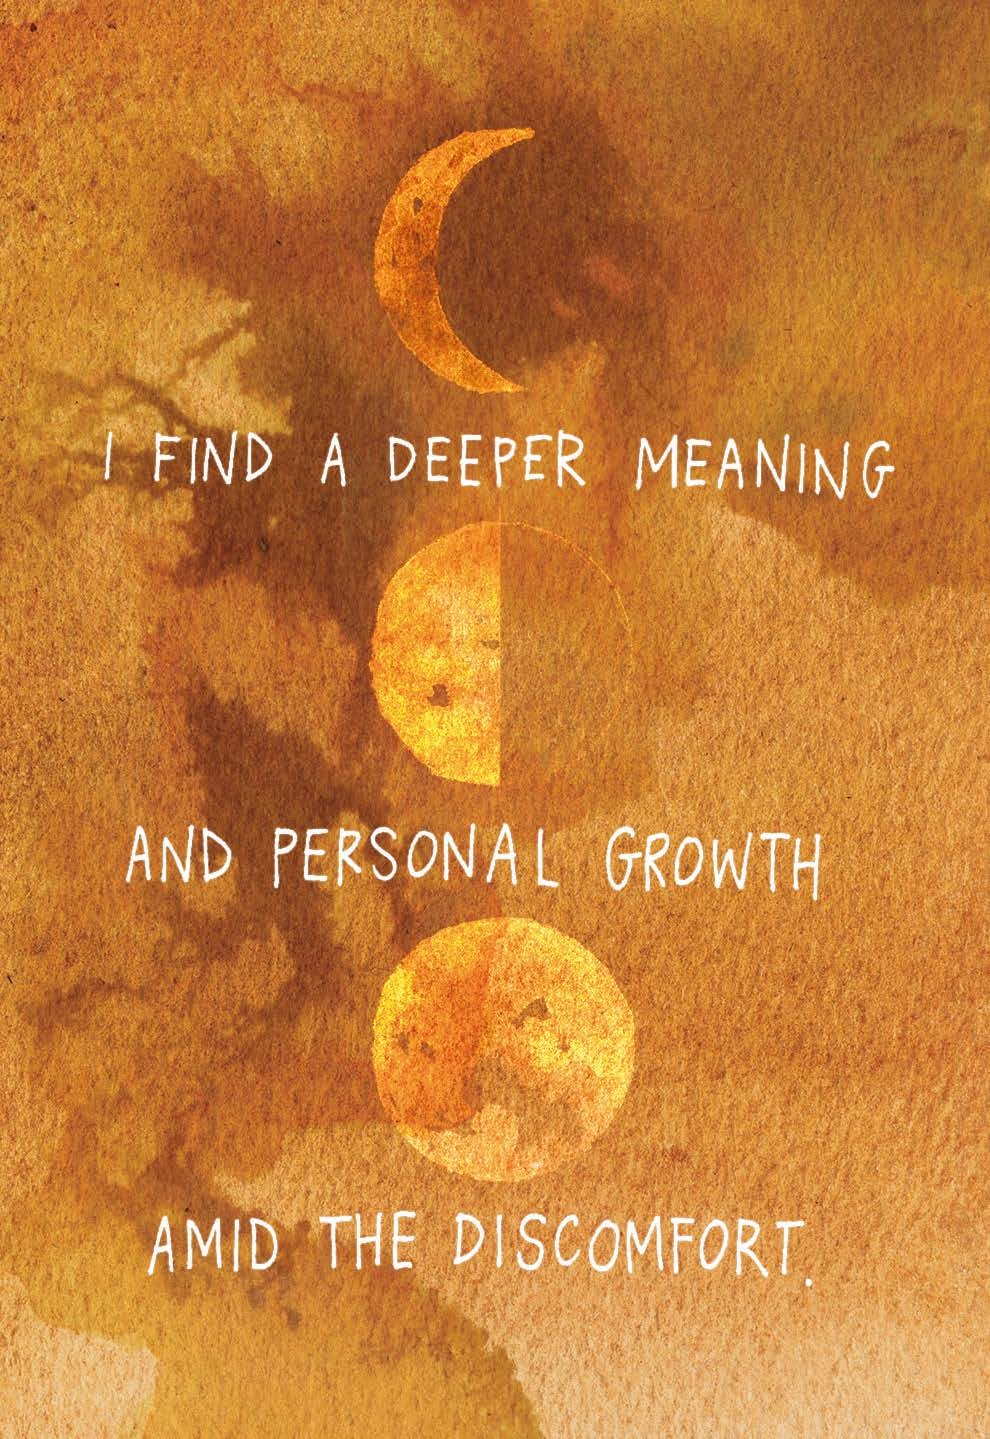 I find a deeper meaning and personal growth amid the discomfort | Gabby Bernstein | The Universe Has Your Back card deck